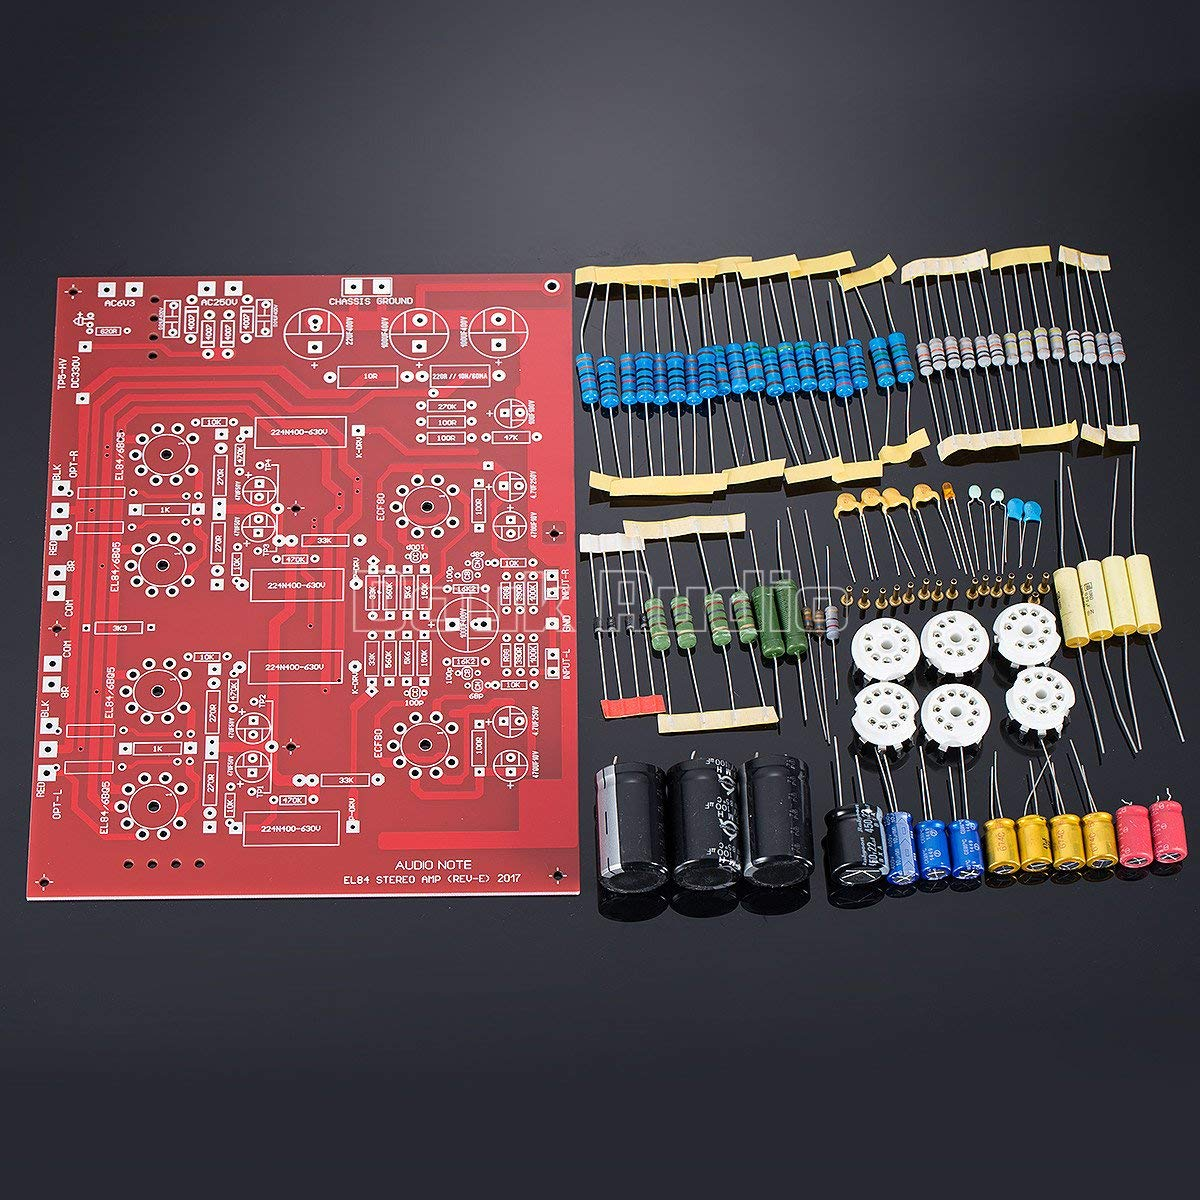 Cheap Diy Pcb Kit Find Deals On Line At Alibabacom Board Prototype Buy Circuit Pcbpcb Prototypepcb Maker Get Quotations Nobsound Stereo Hi Fi Push Pull El84 Vaccum Tube Amplifier